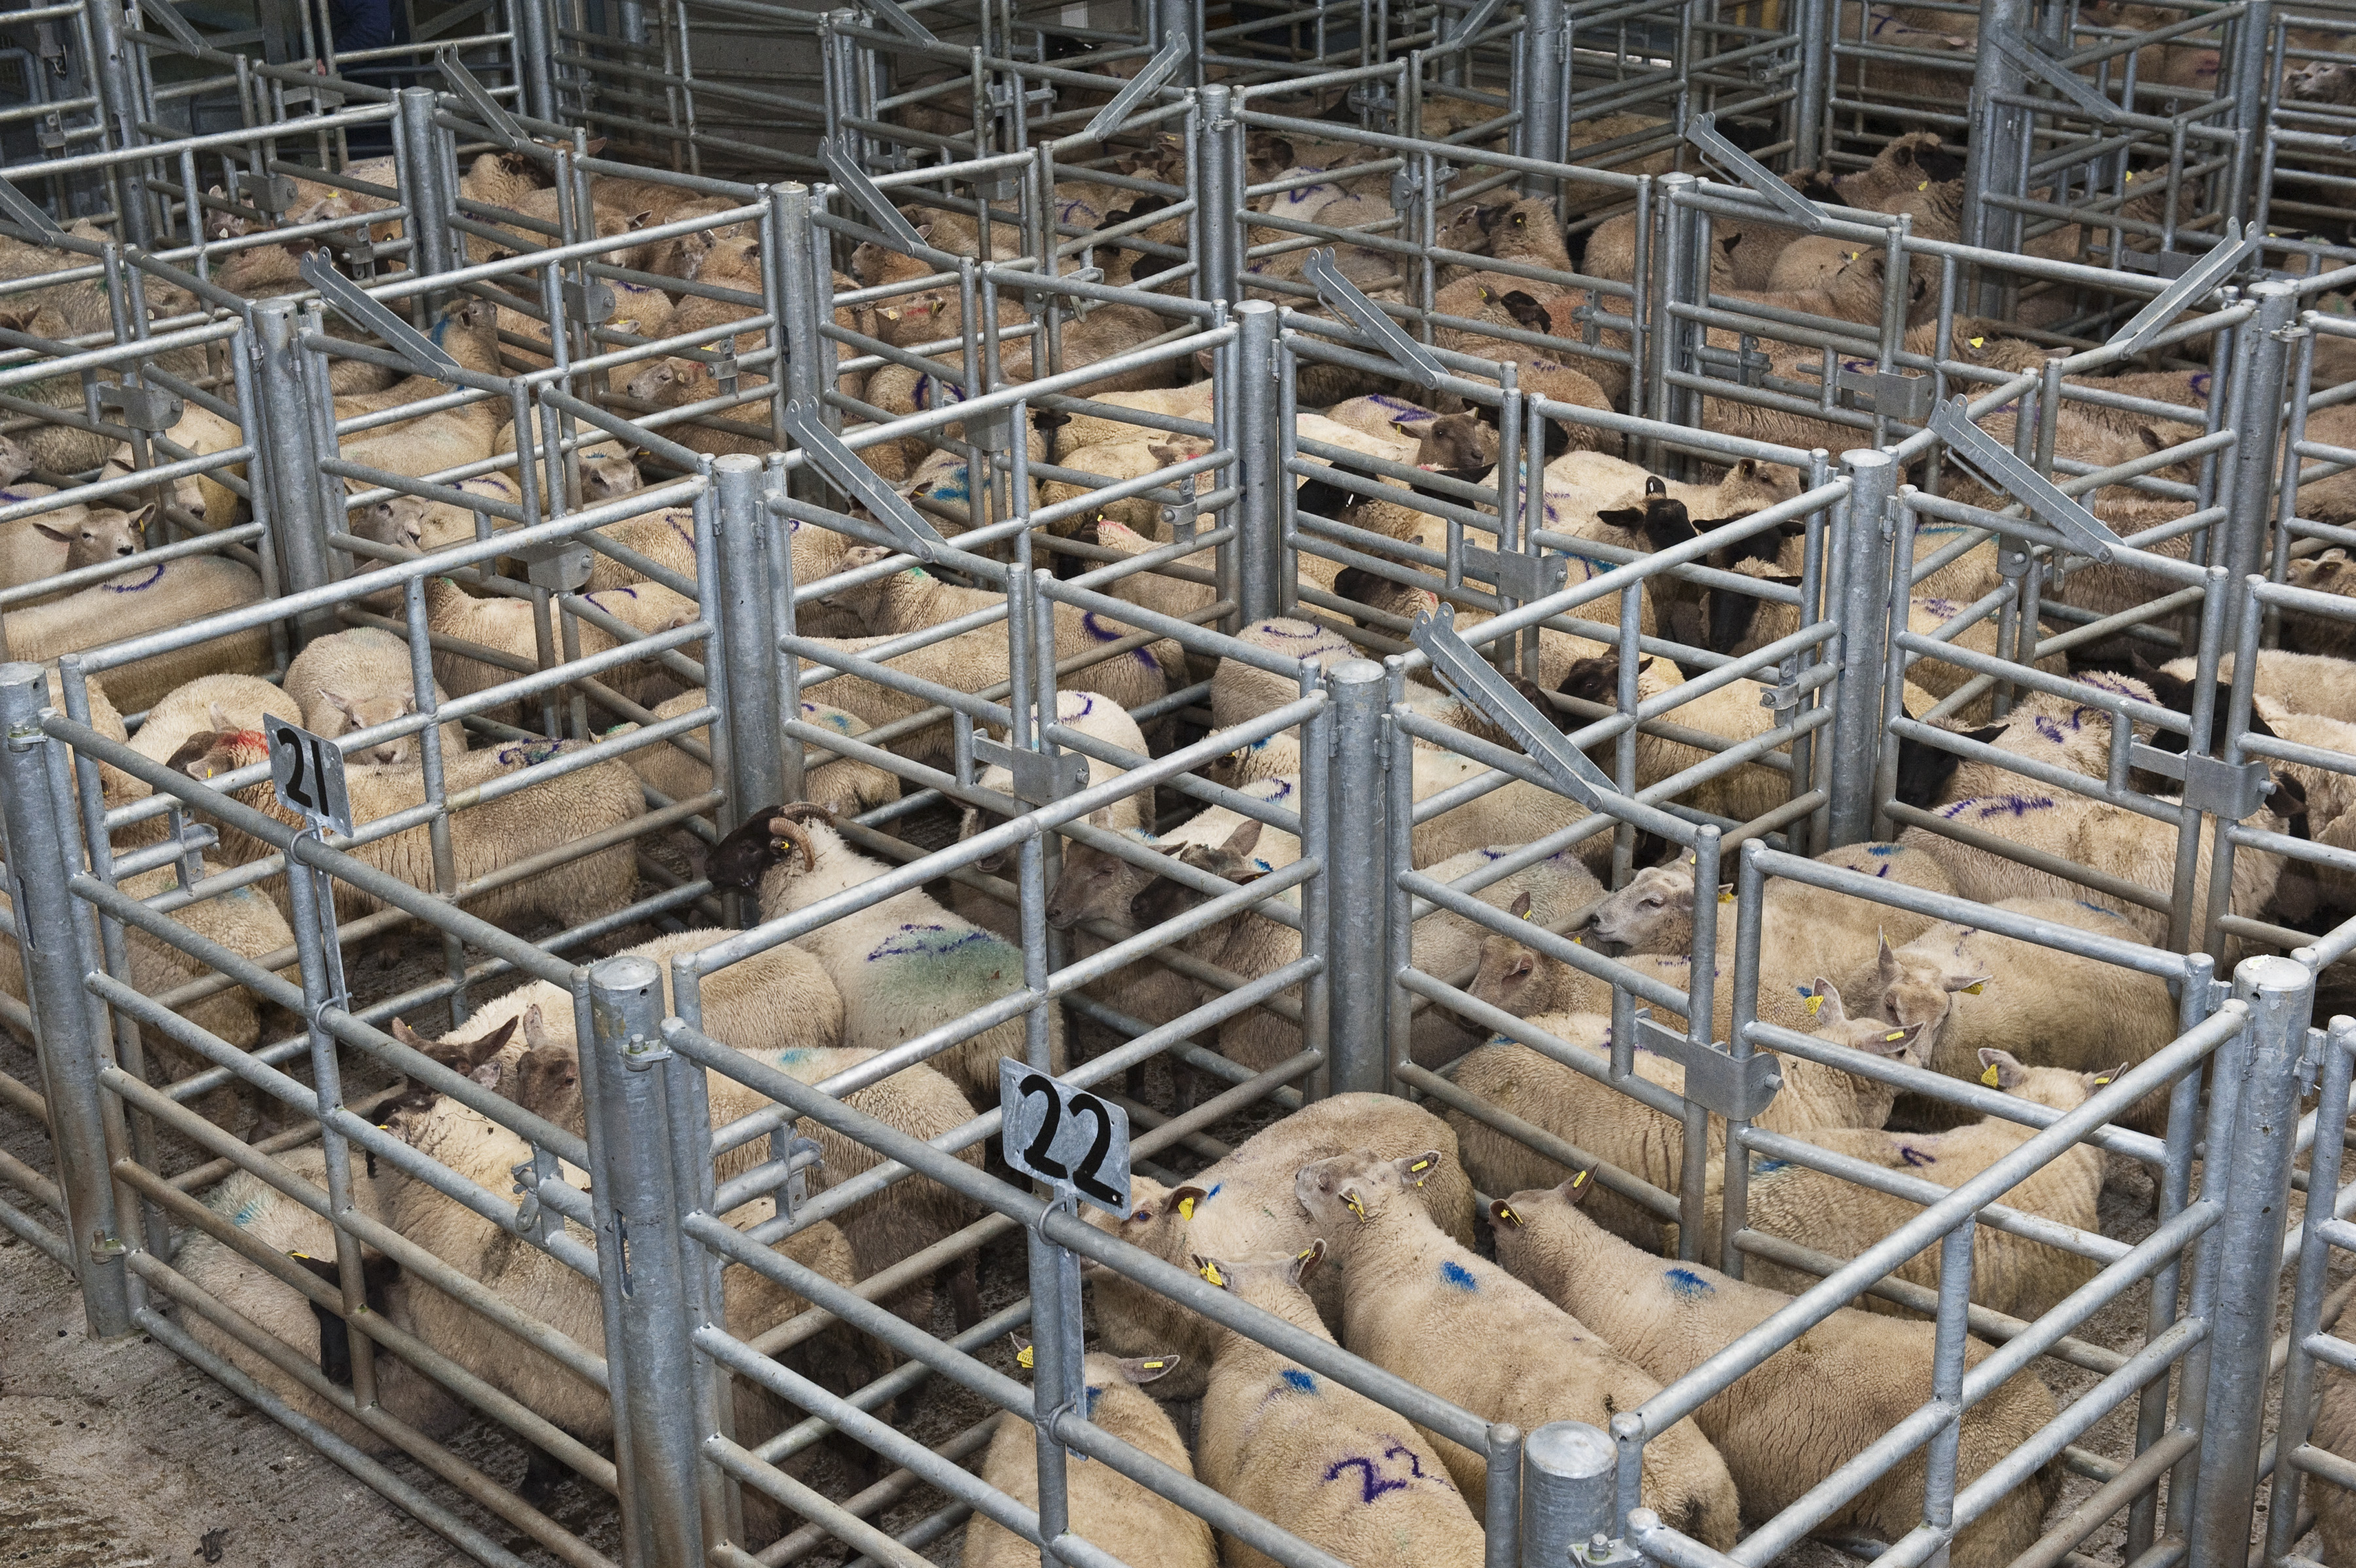 Sheep penned in mart. Photo O'Gorman Photography.